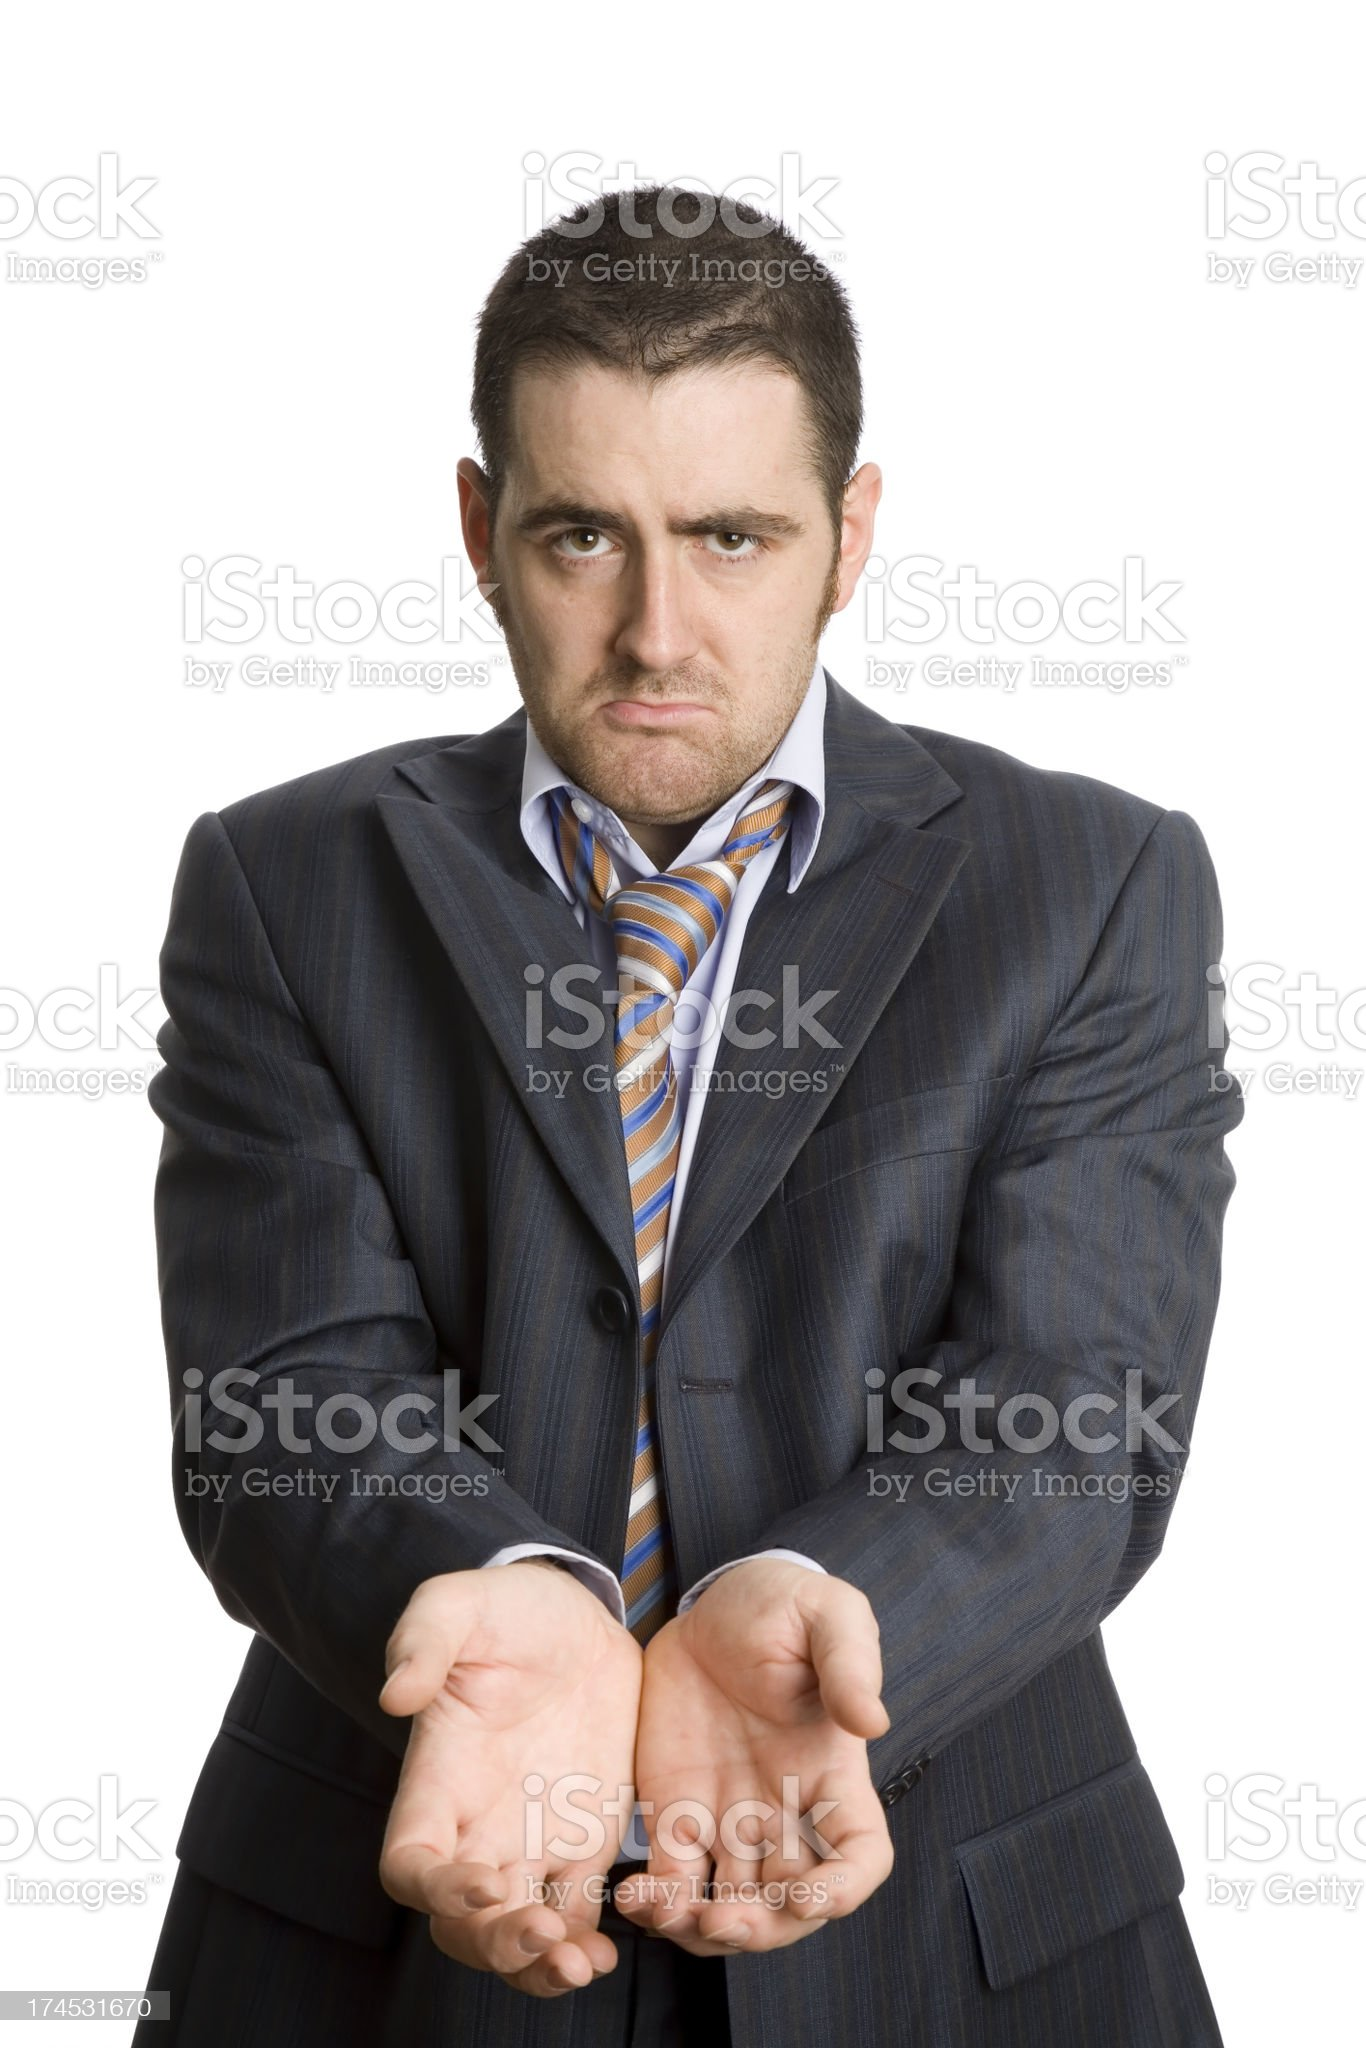 Arrested business man royalty-free stock photo